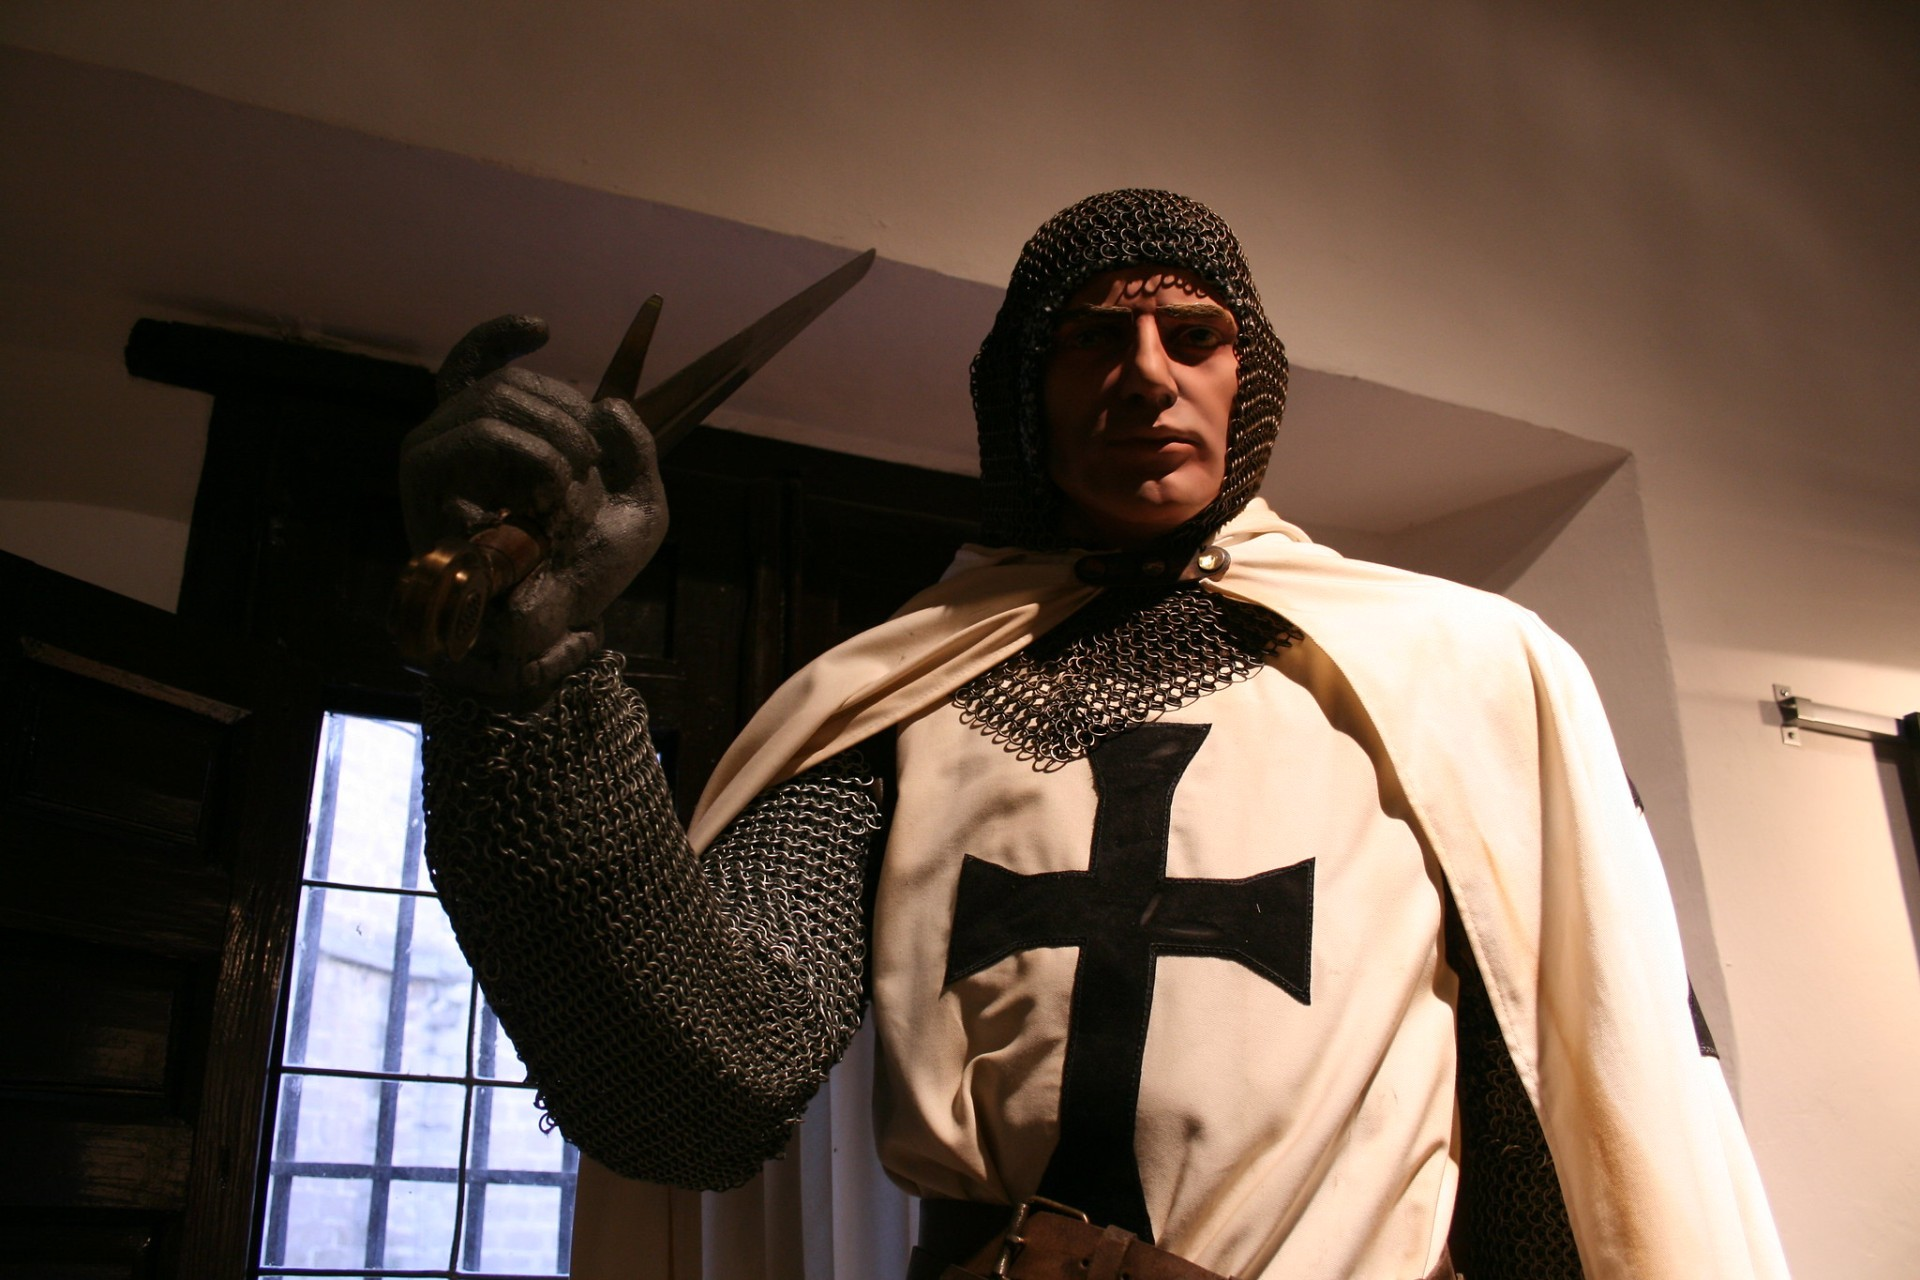 Teutonic Knights Heritage in Poland